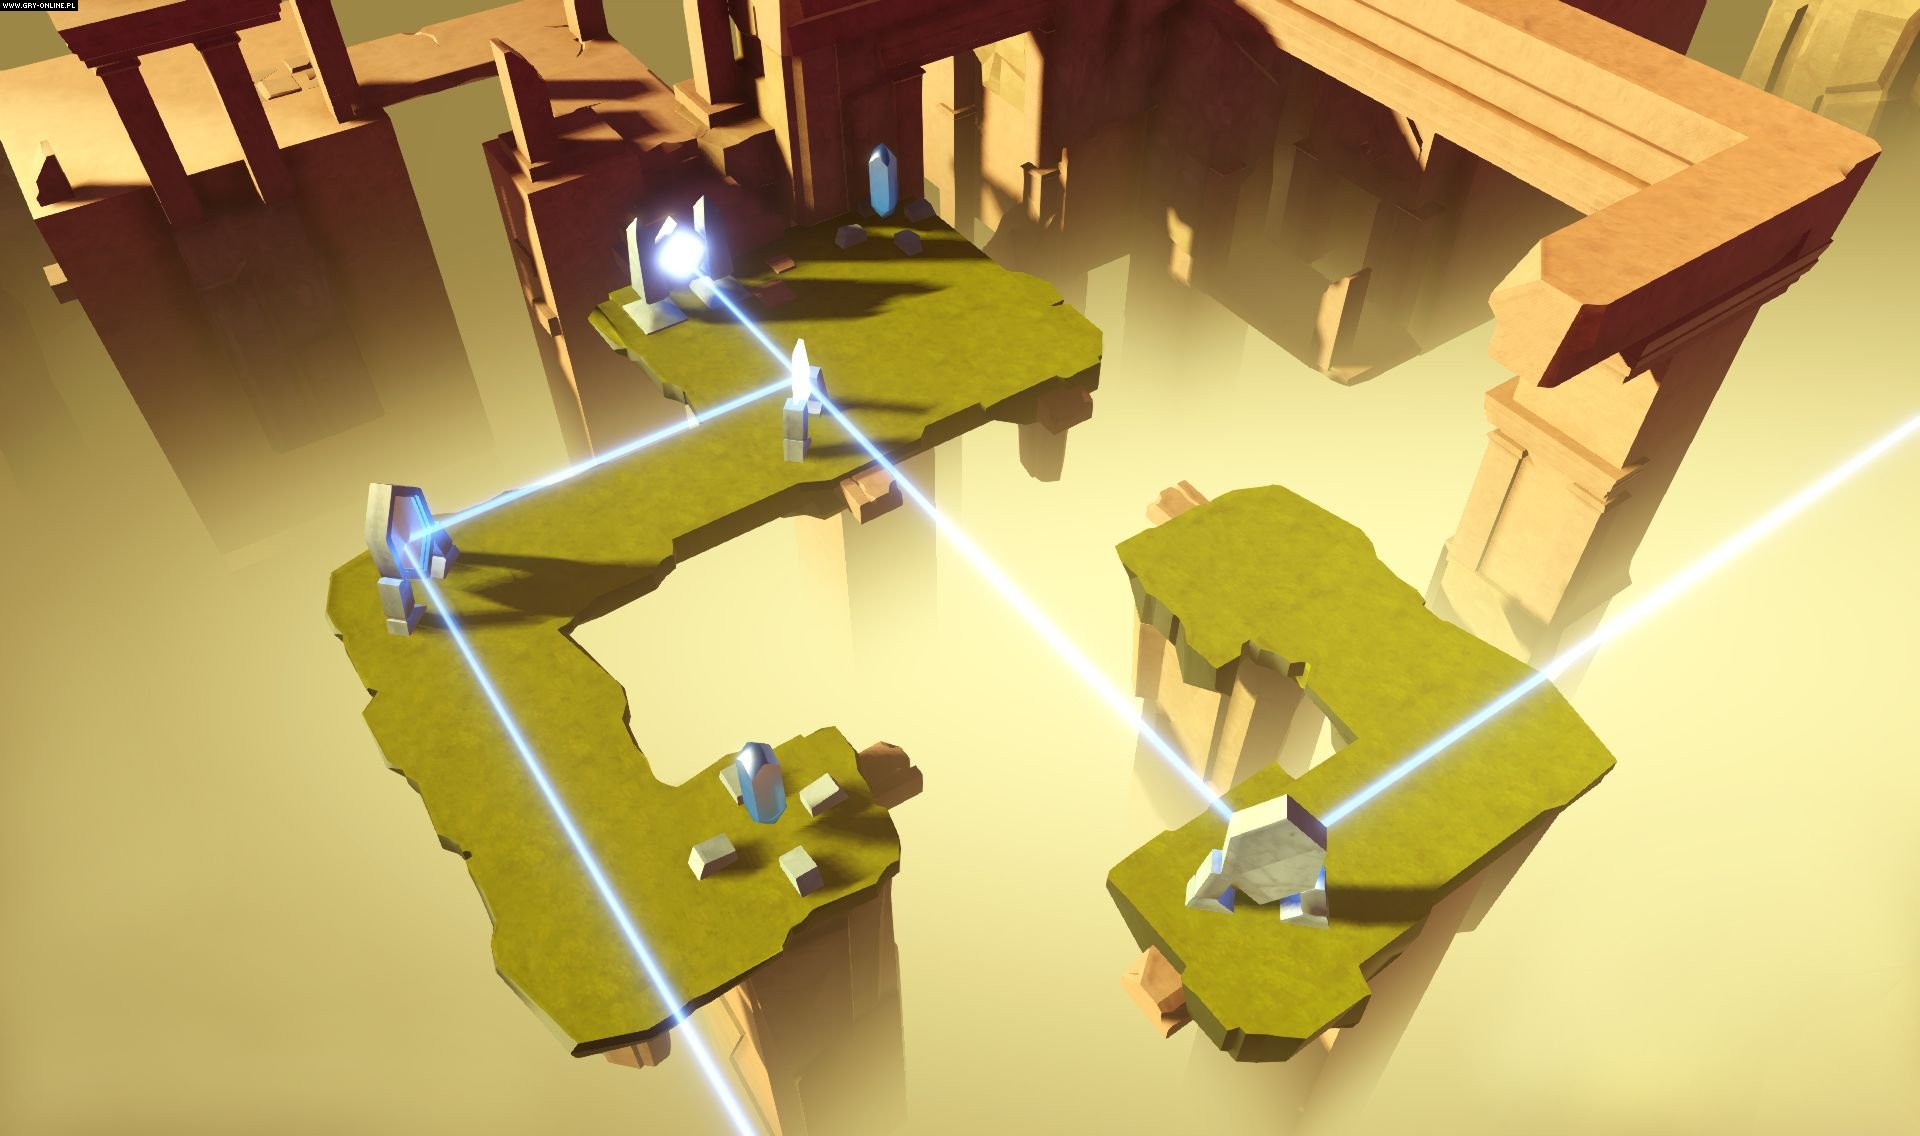 Archaica: The Path of Light PC Games Image 50/50, TwoMammoths